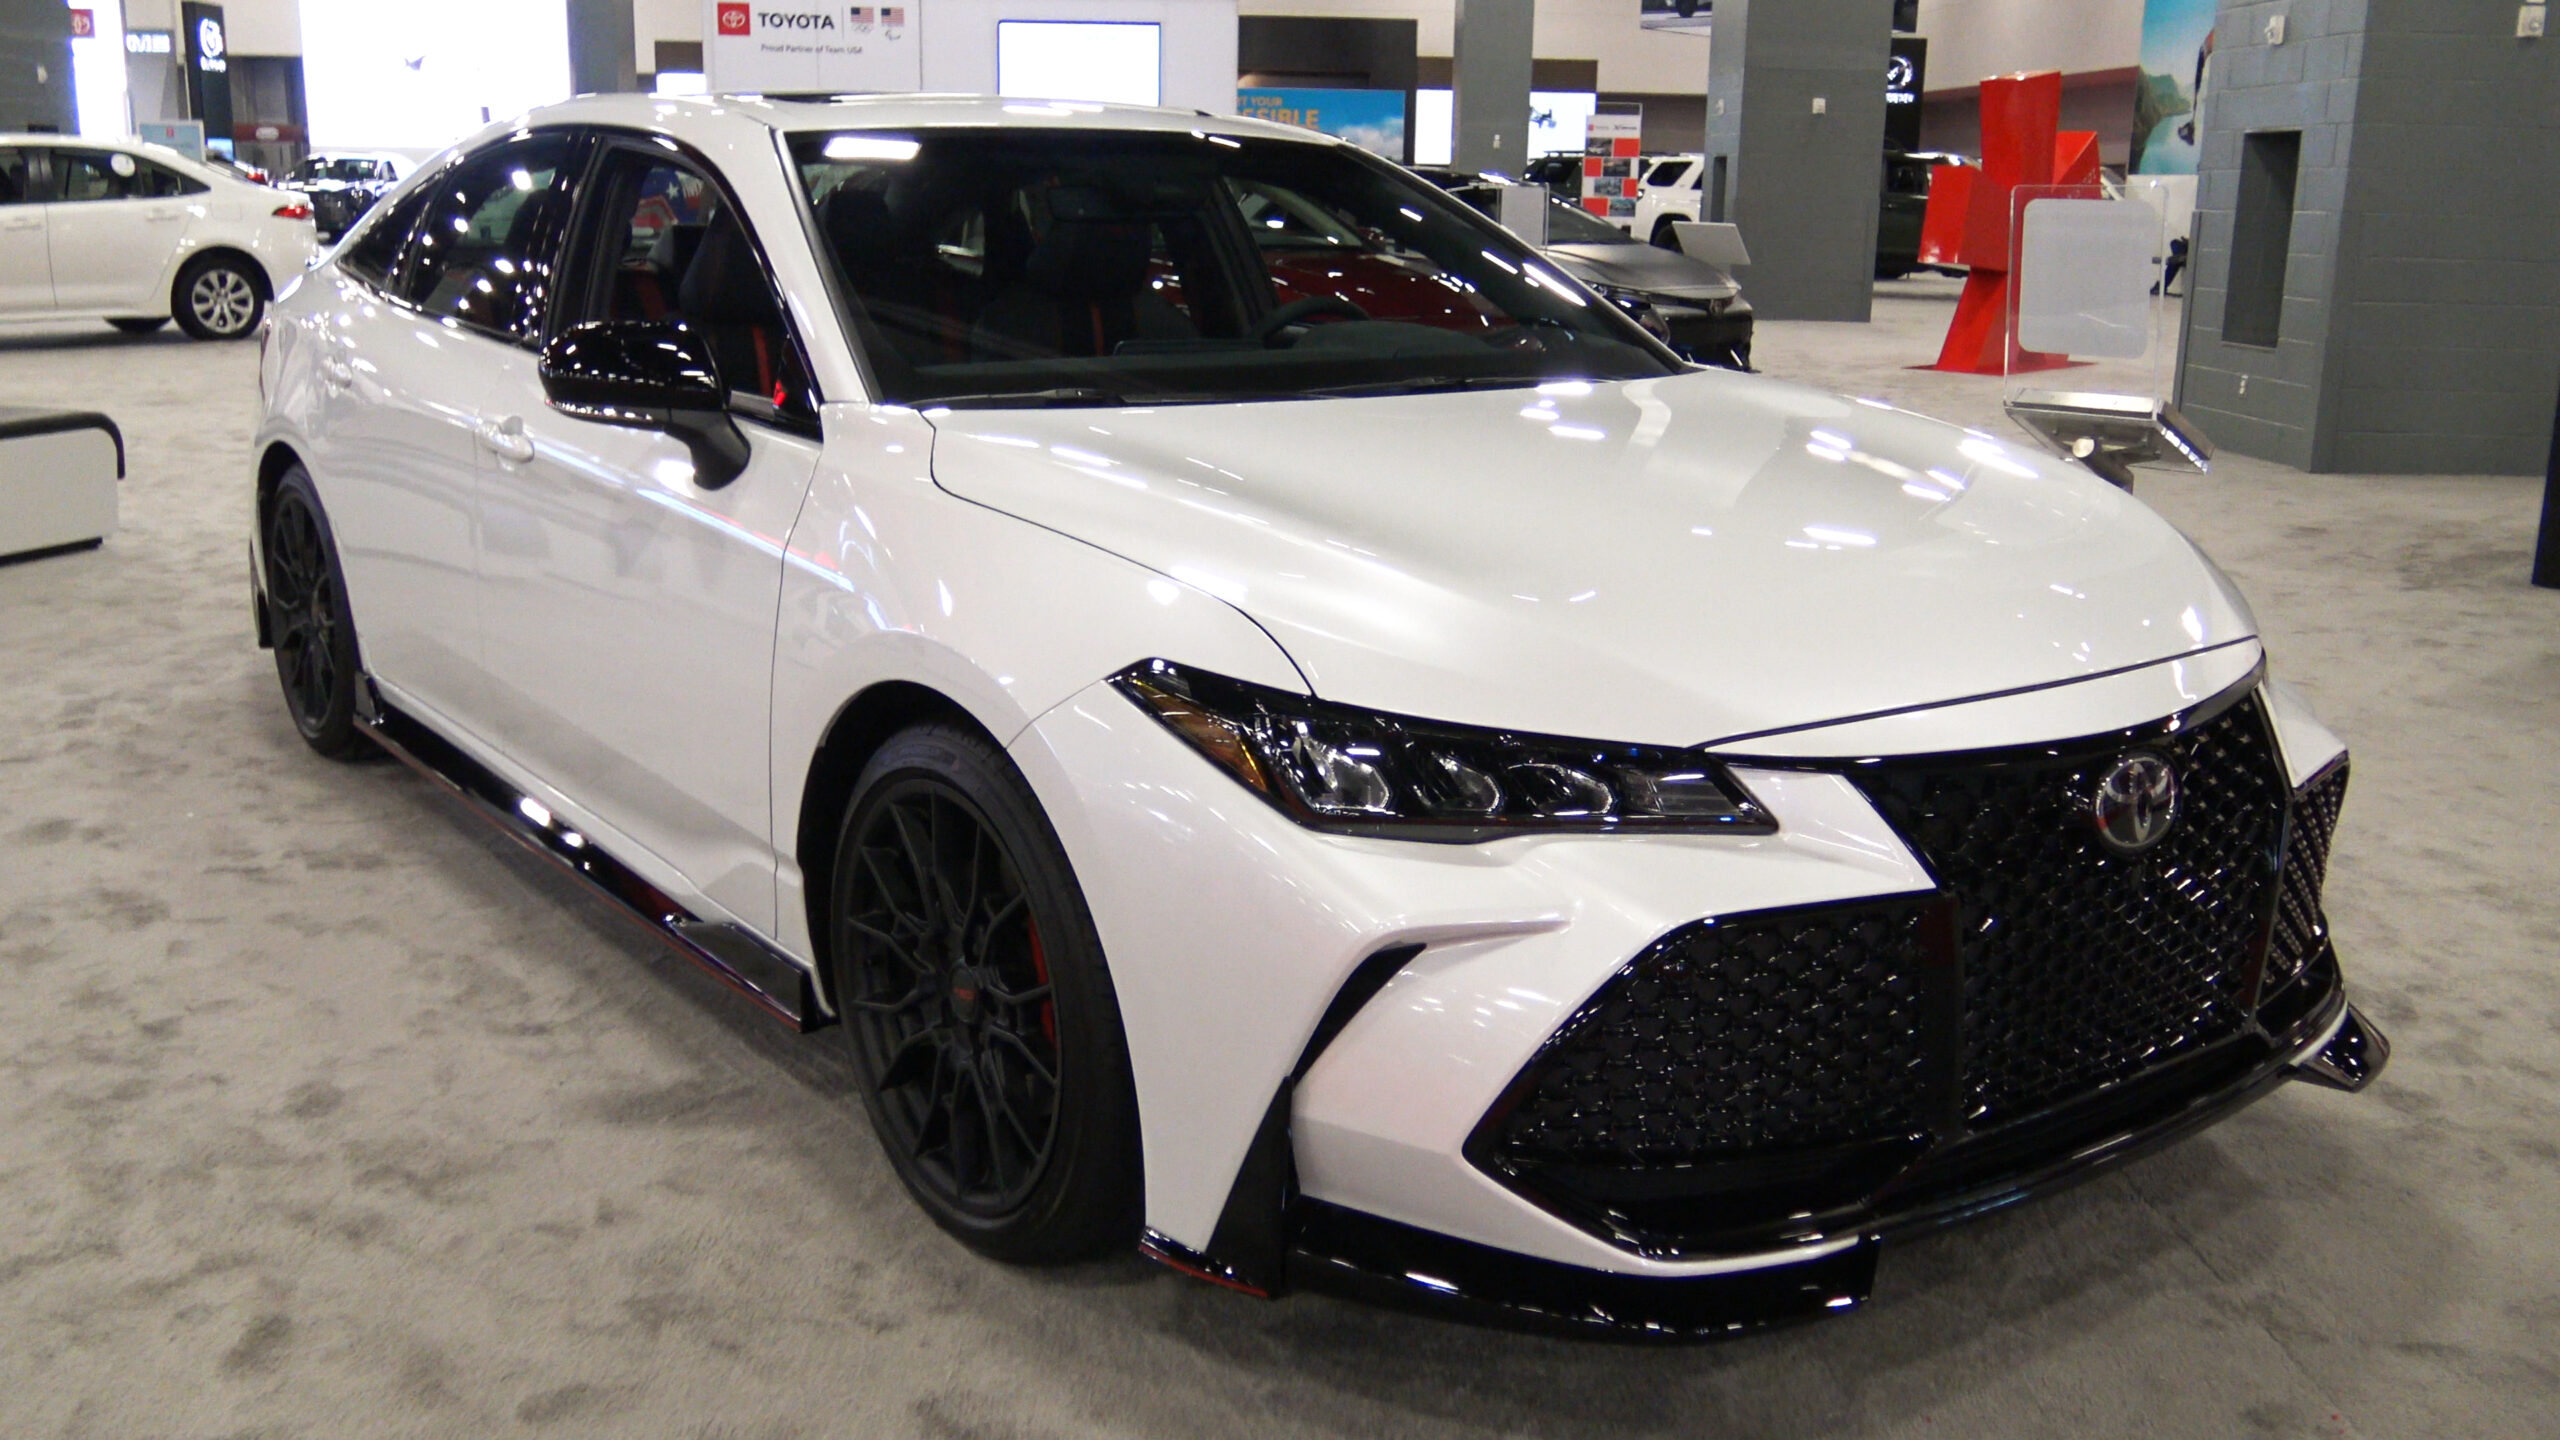 2020 Toyota Avalon TRD in silver